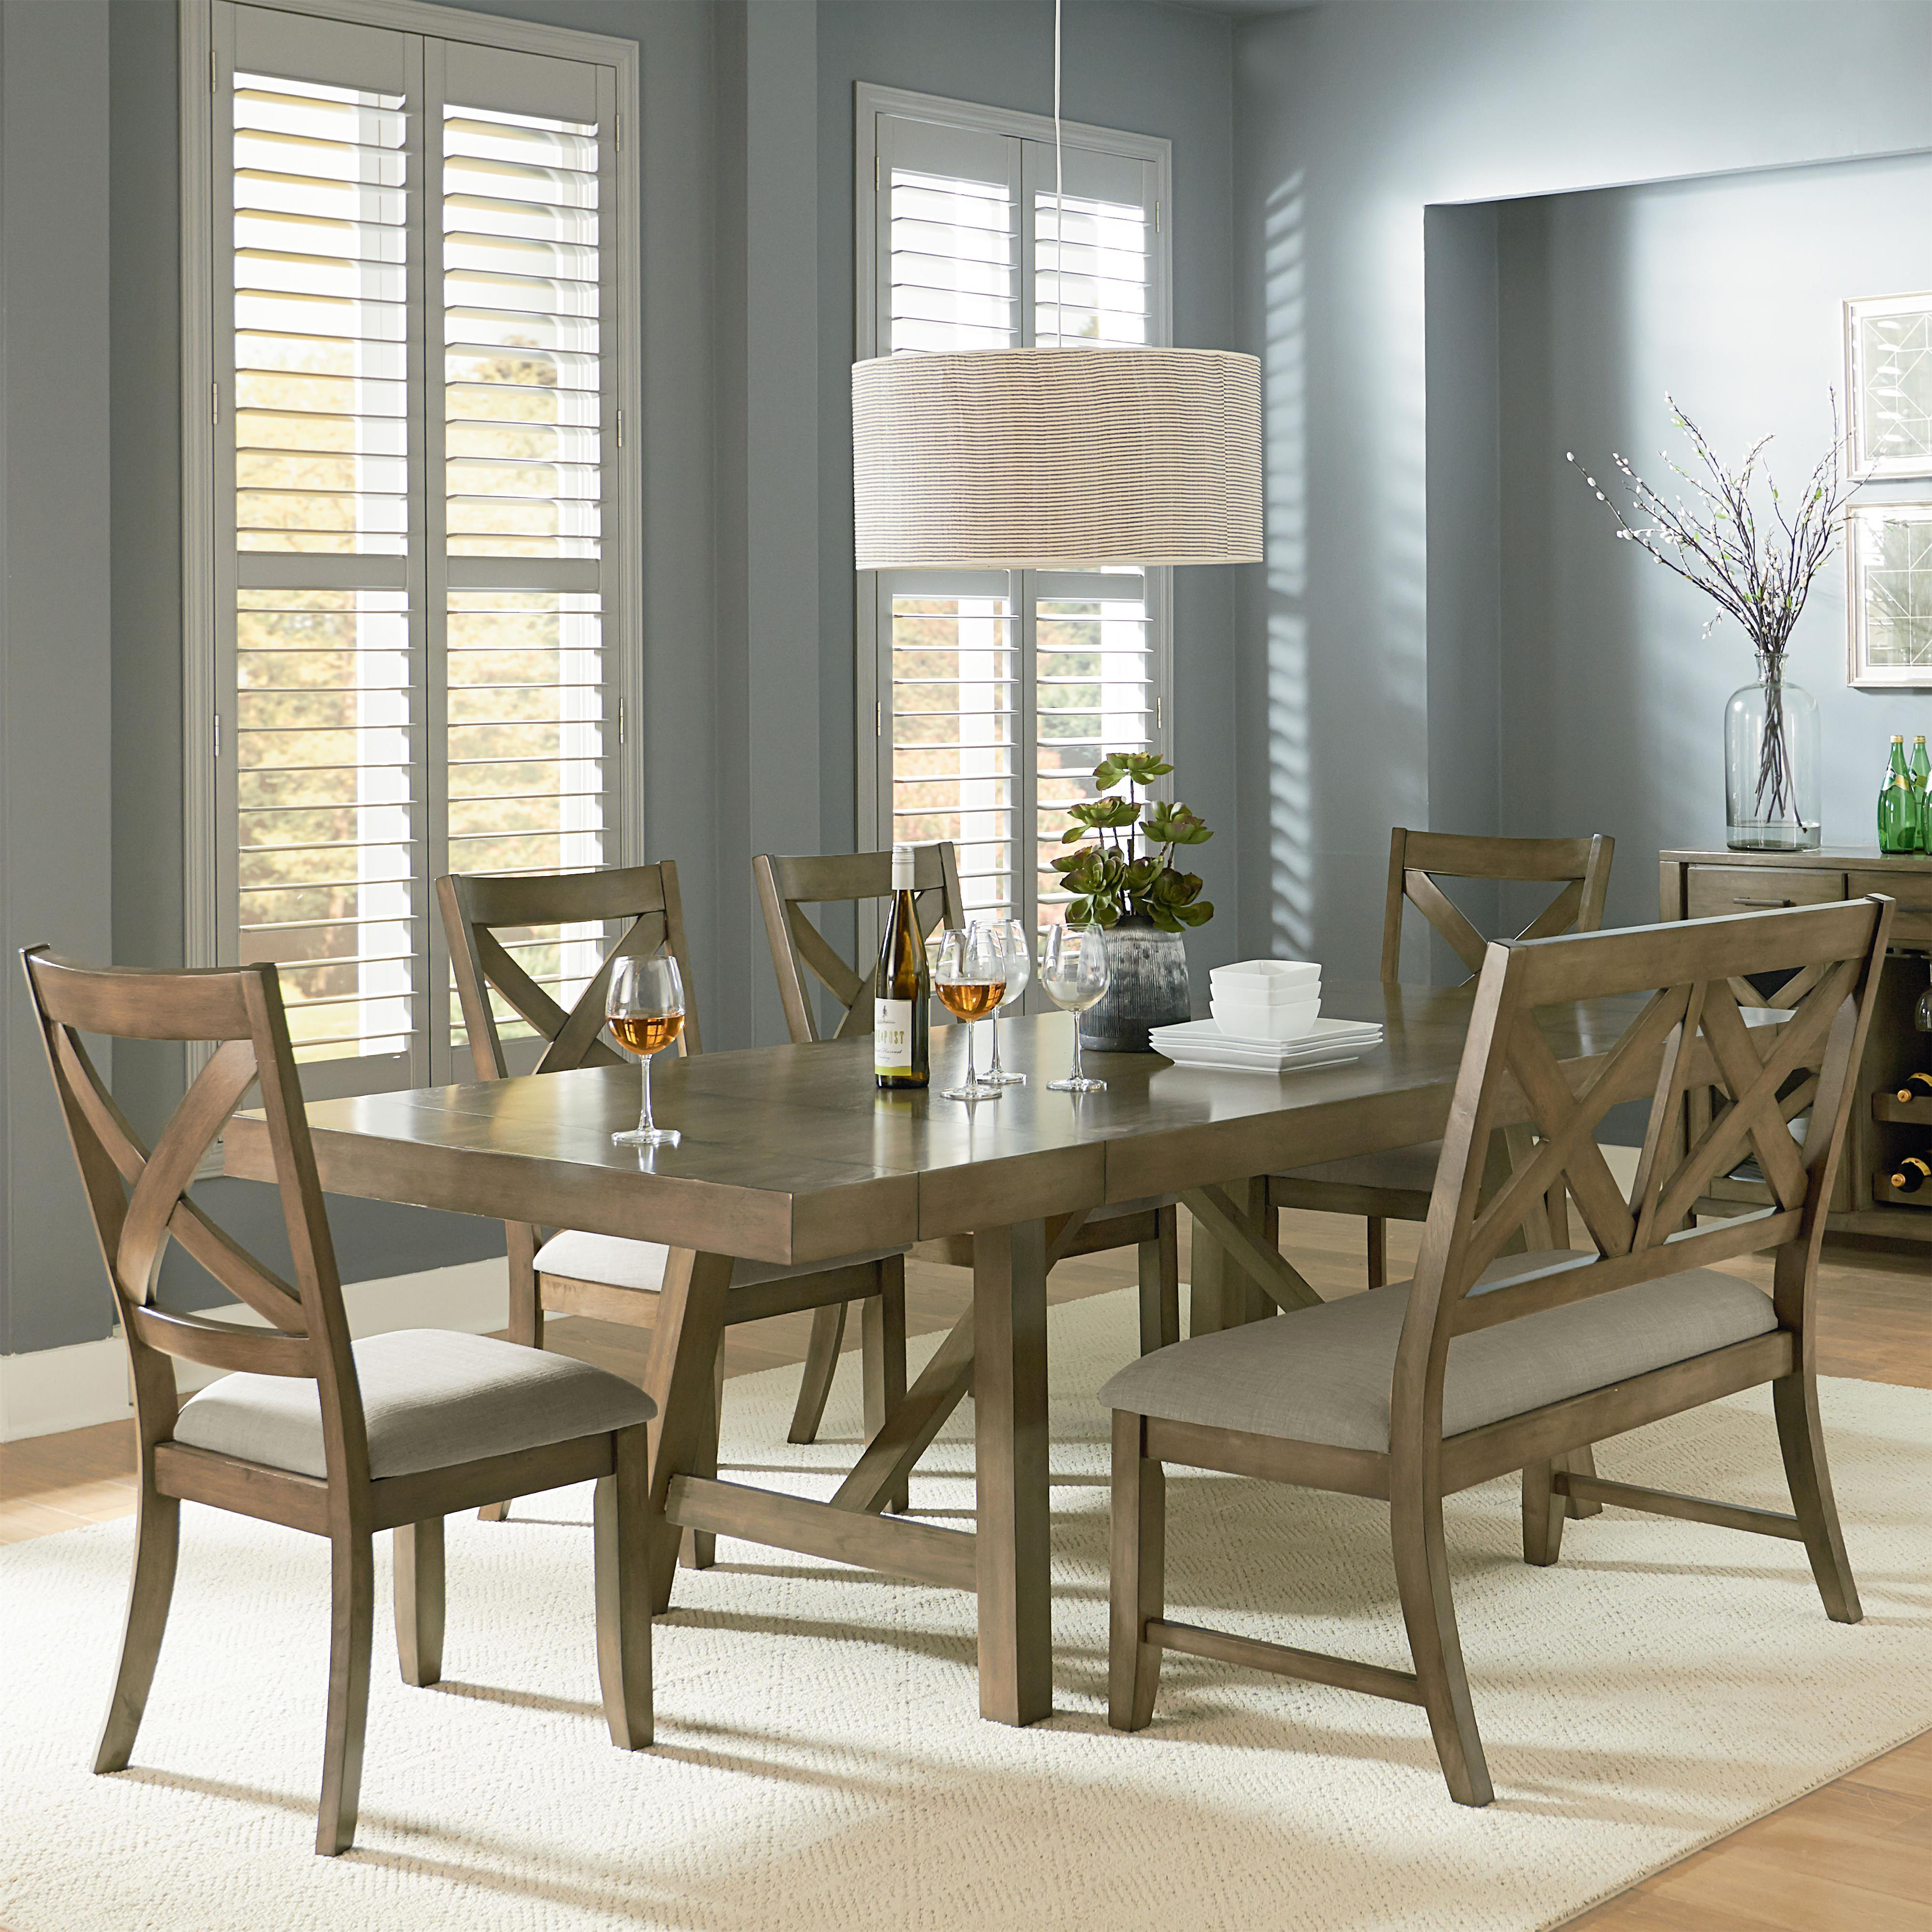 Standard Furniture Omaha Grey Trestle Table Dining Set - Item Number: 16681+89+4x84